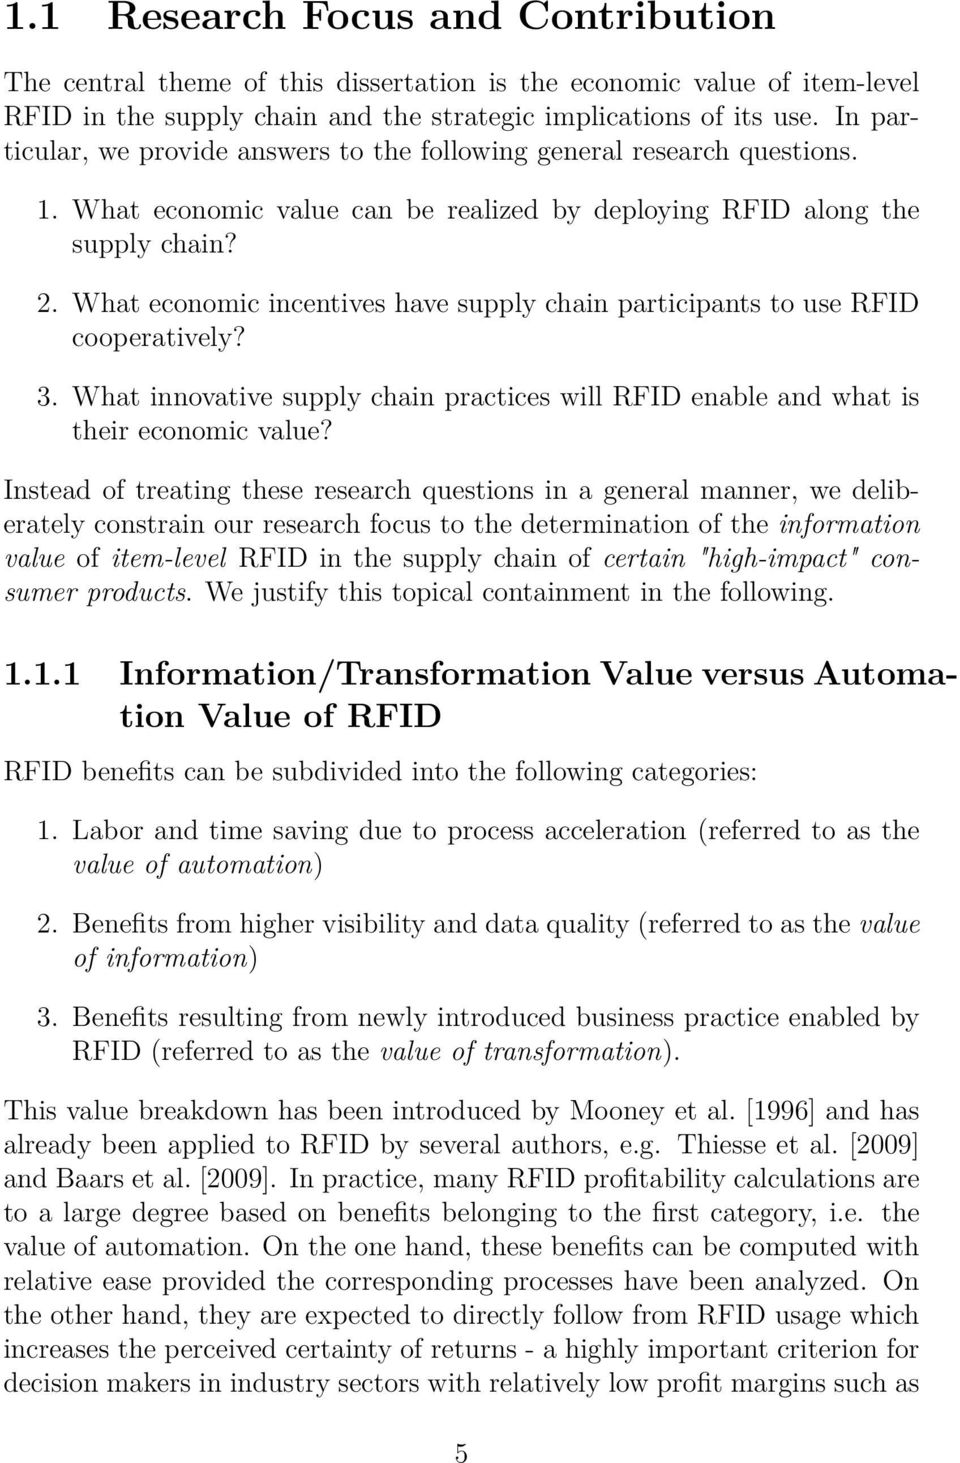 What economic incentives have supply chain participants to use RFID cooperatively? 3. What innovative supply chain practices will RFID enable and what is their economic value?